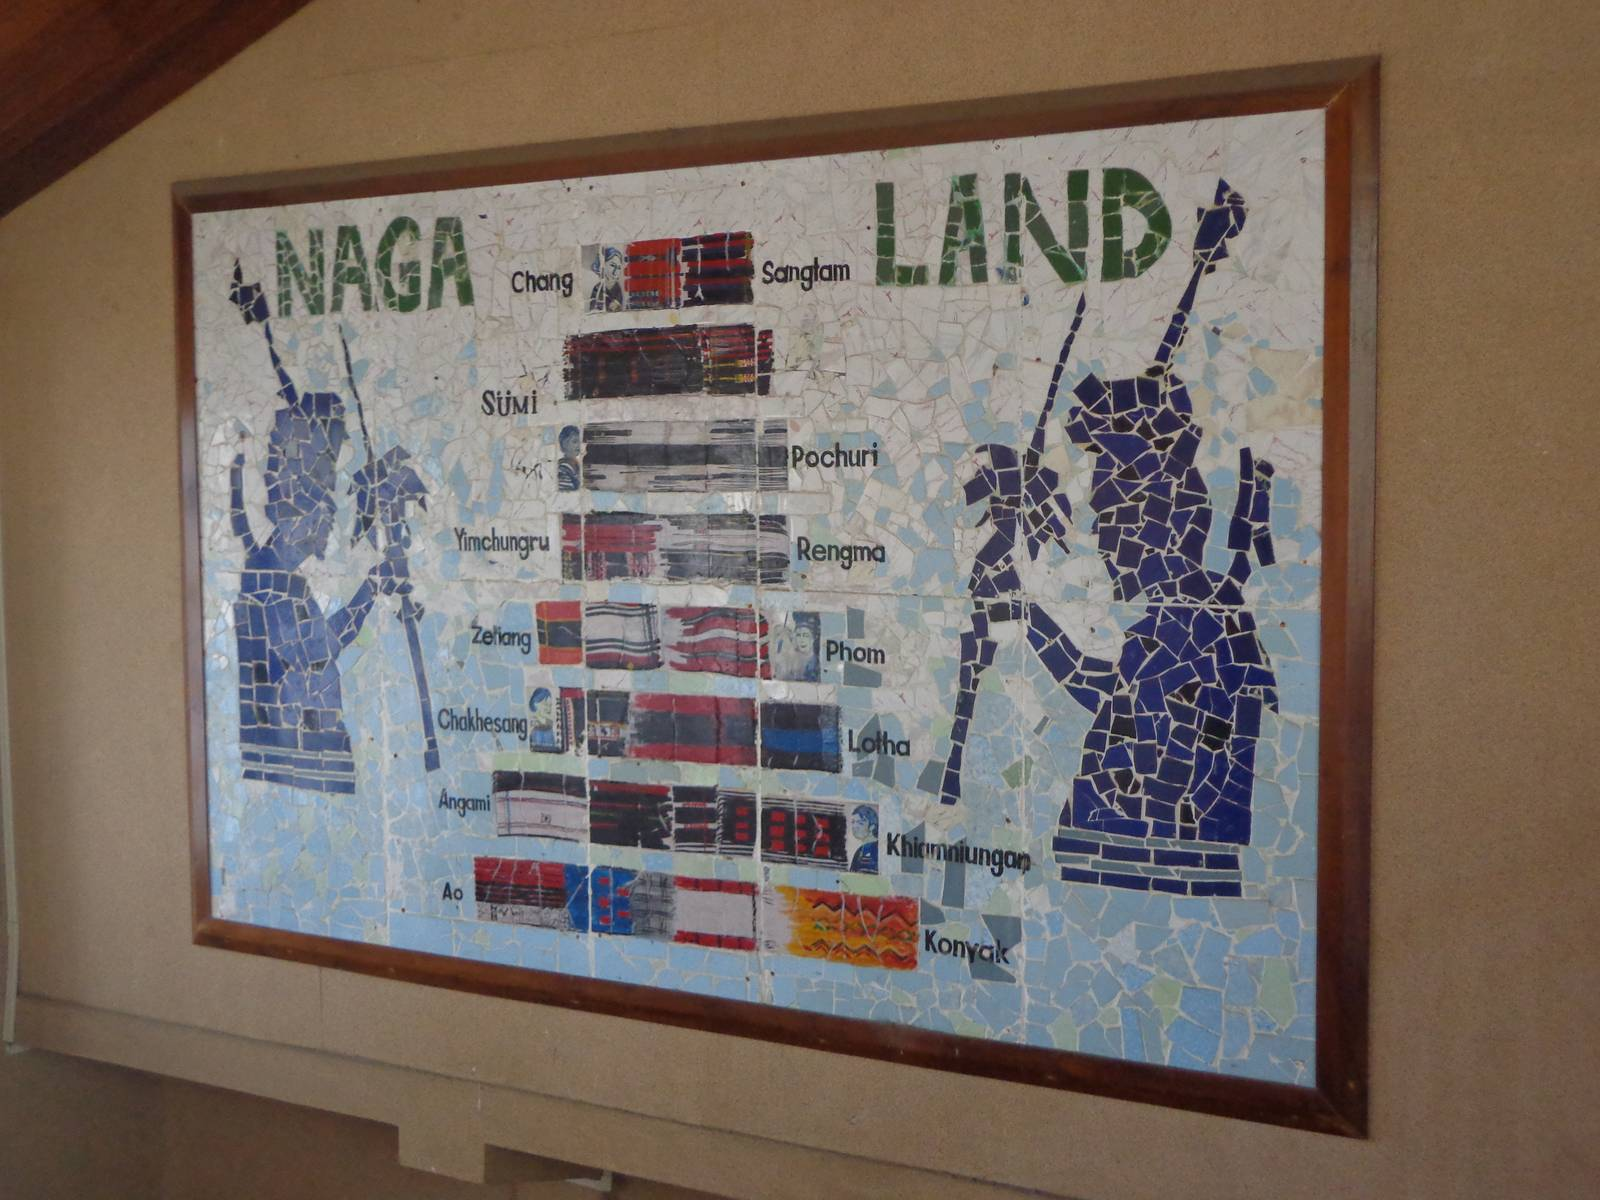 A wall mural serves as a cheat sheet to various Naga tribes.